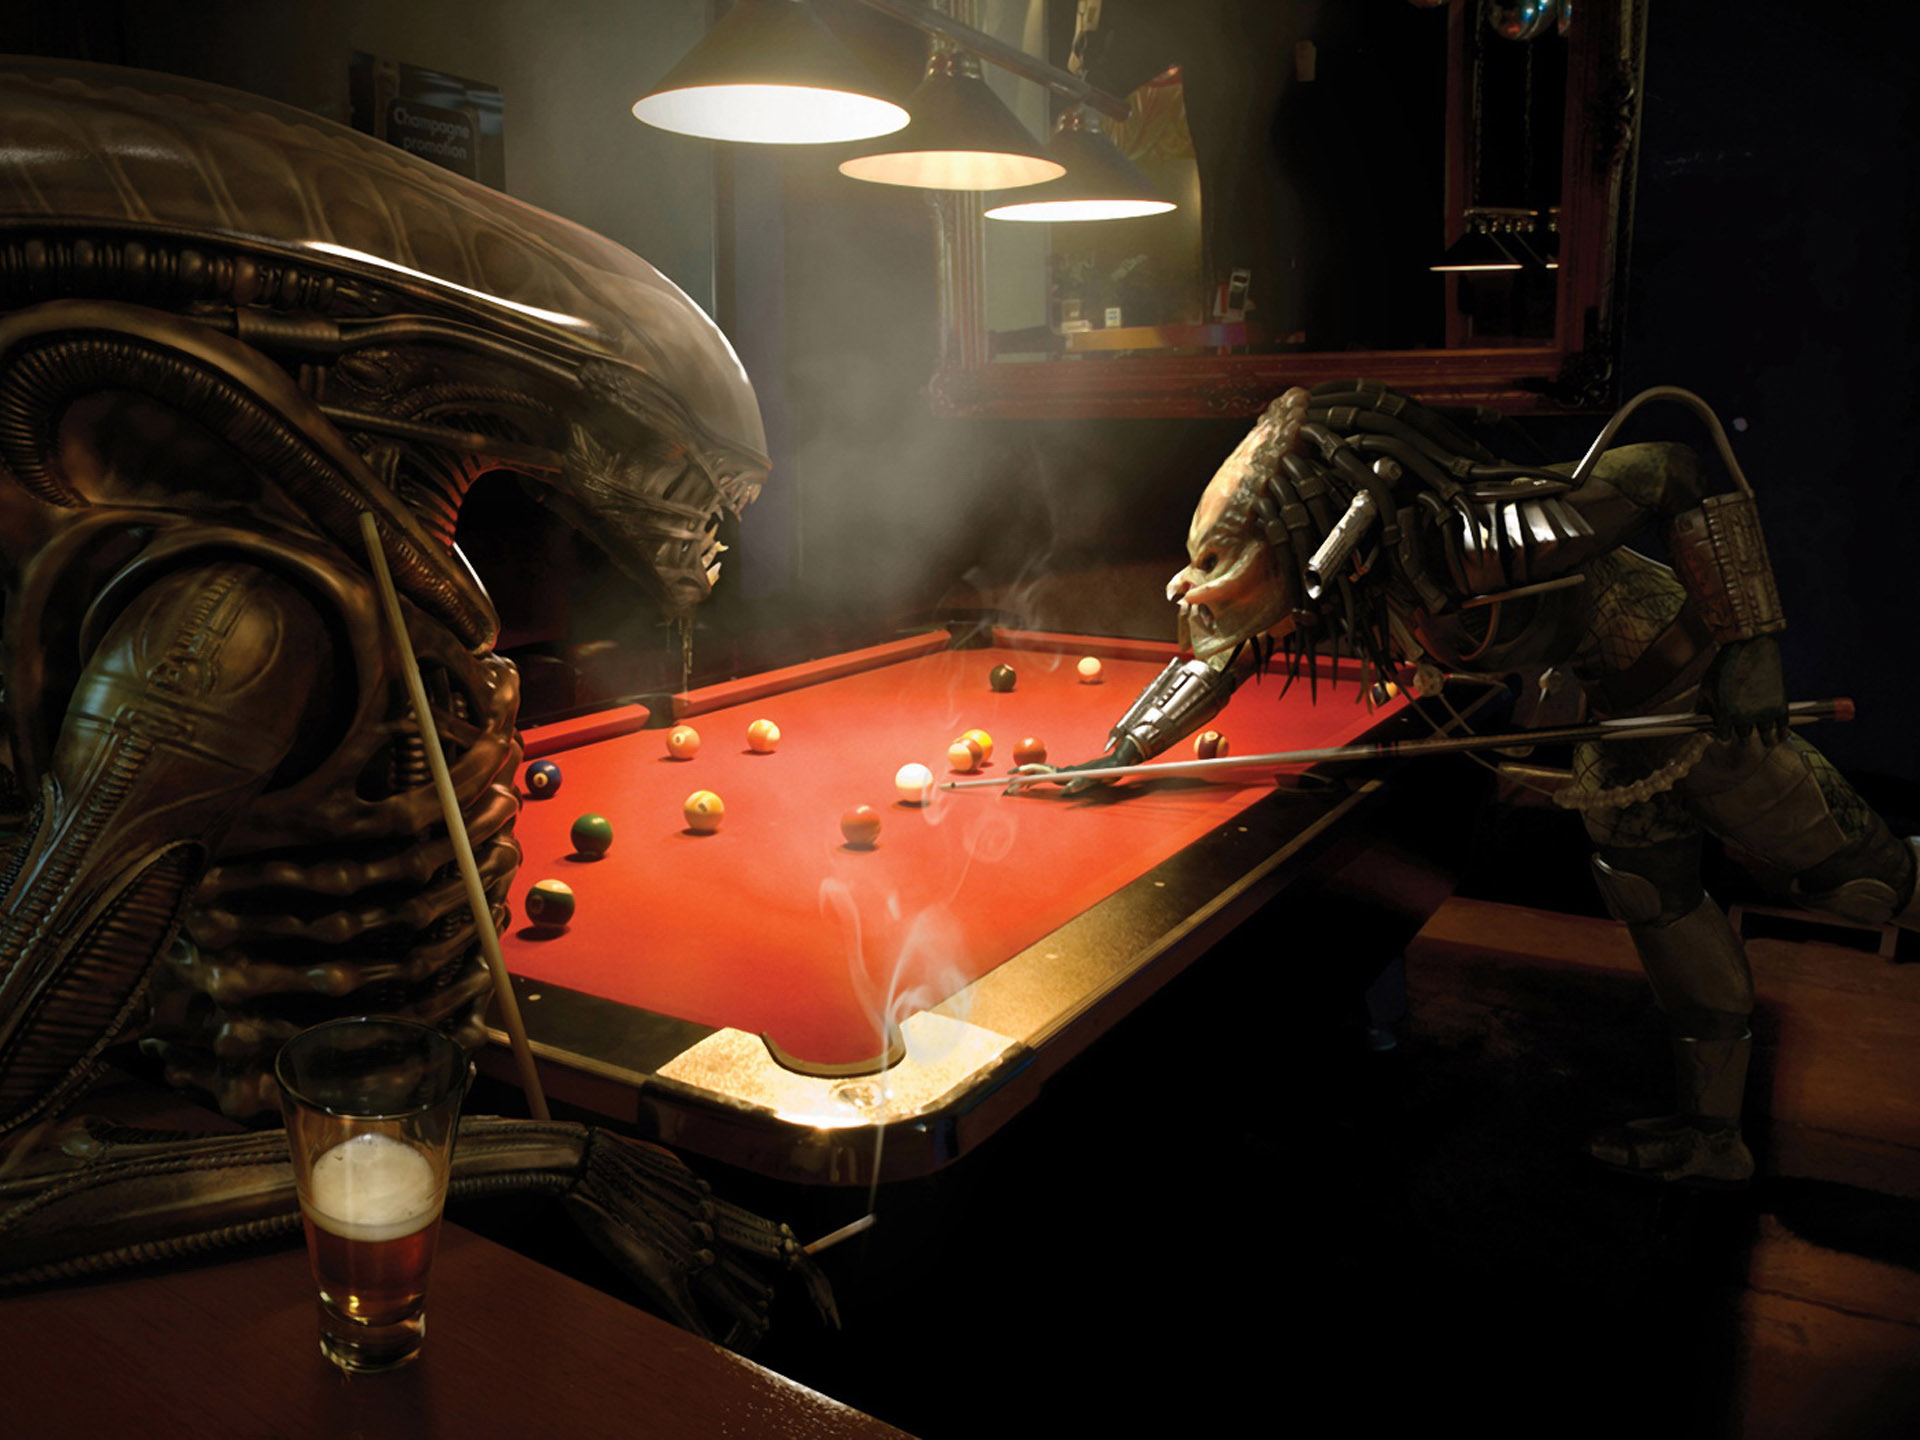 dans fond ecran alien album-foto-alien_vs_predator_playing_pool-big